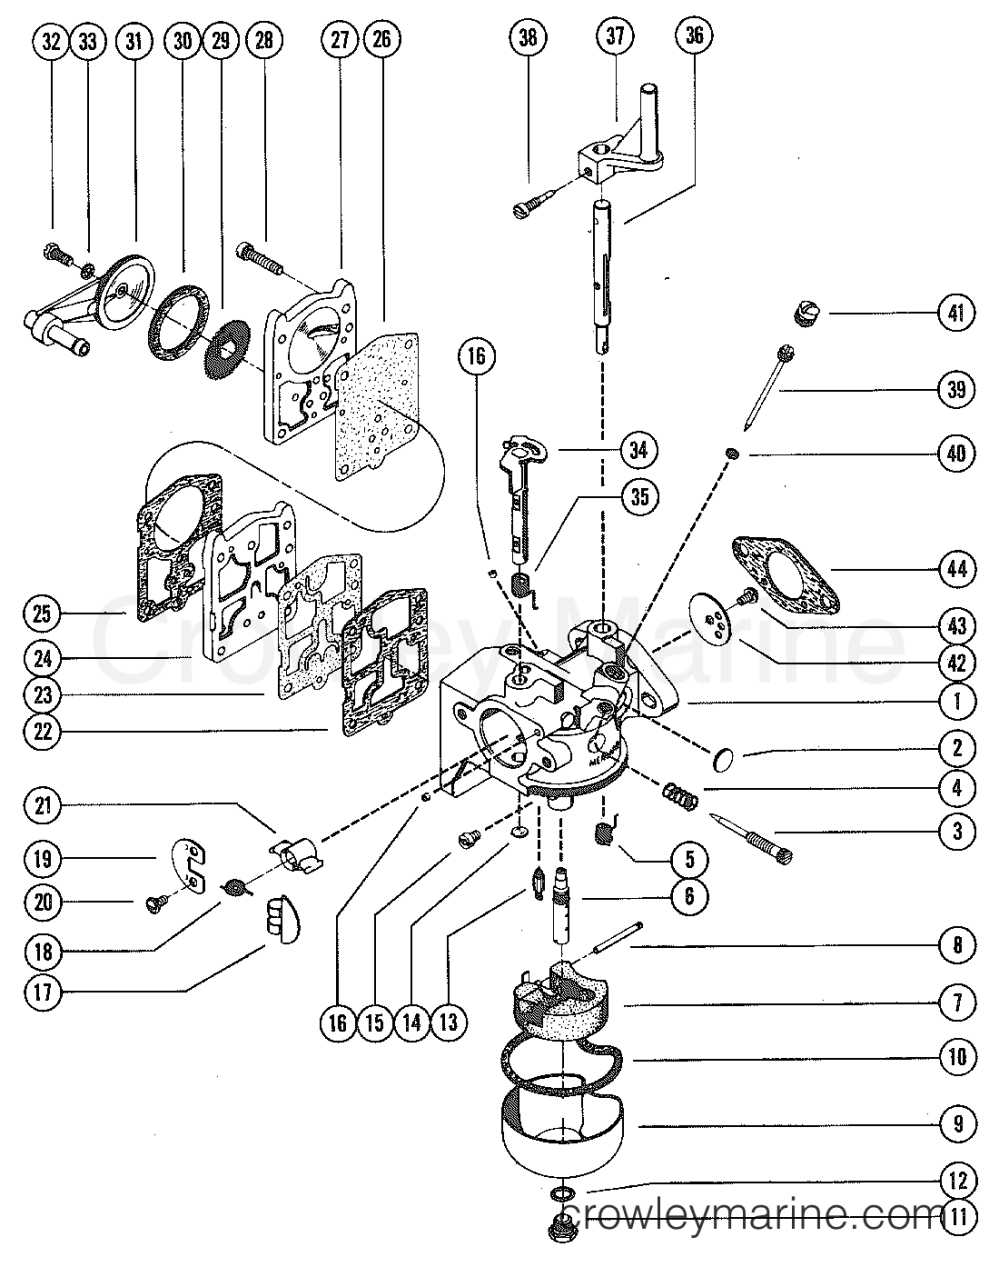 medium resolution of carburetor assembly complete 1975 mercury outboard 9 8 1110205 mercury 25hp 2 stroke carb diagram mercury carb diagram